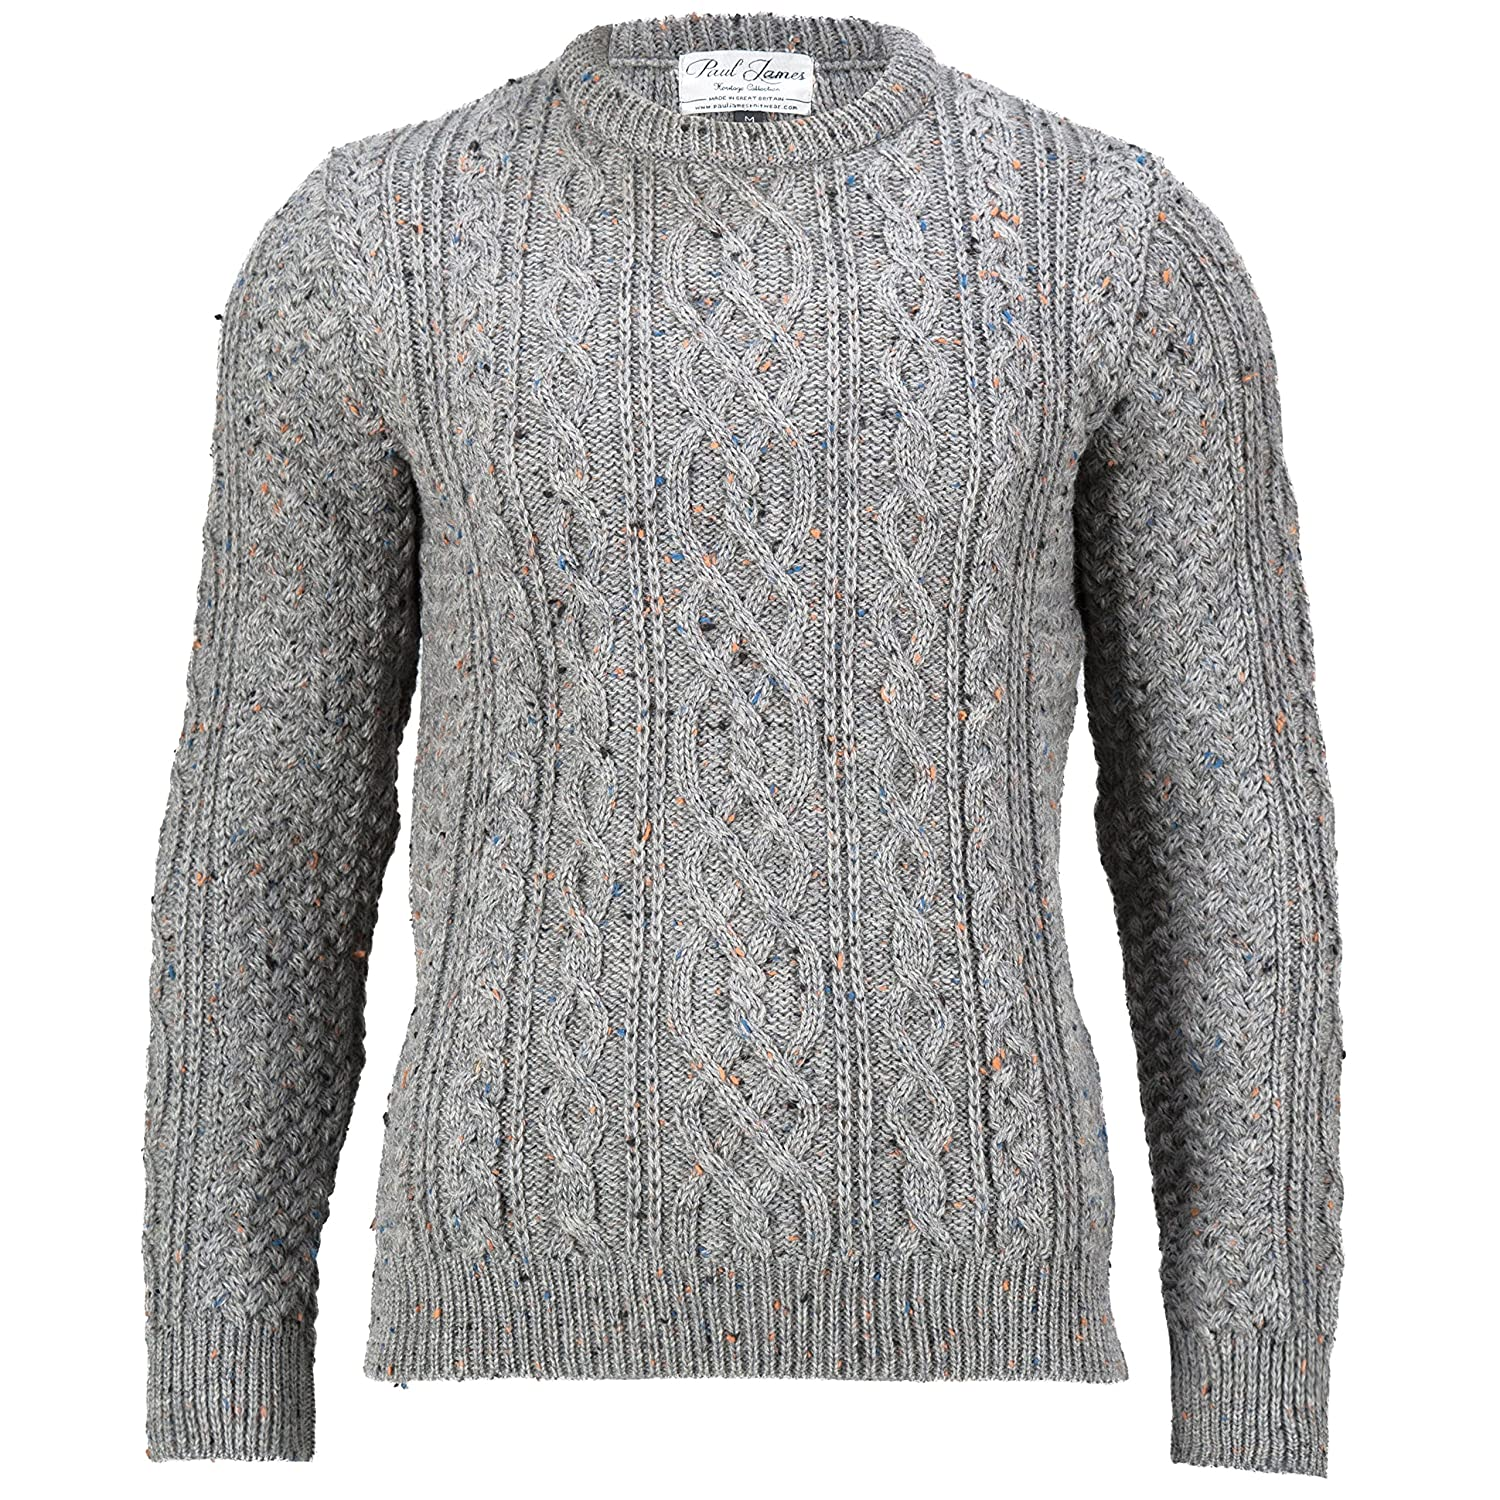 591ee0e452e2 Paul James Knitwear Thorpe - Mens 100% British Wool Chunky Aran Jumper:  Amazon.co.uk: Clothing